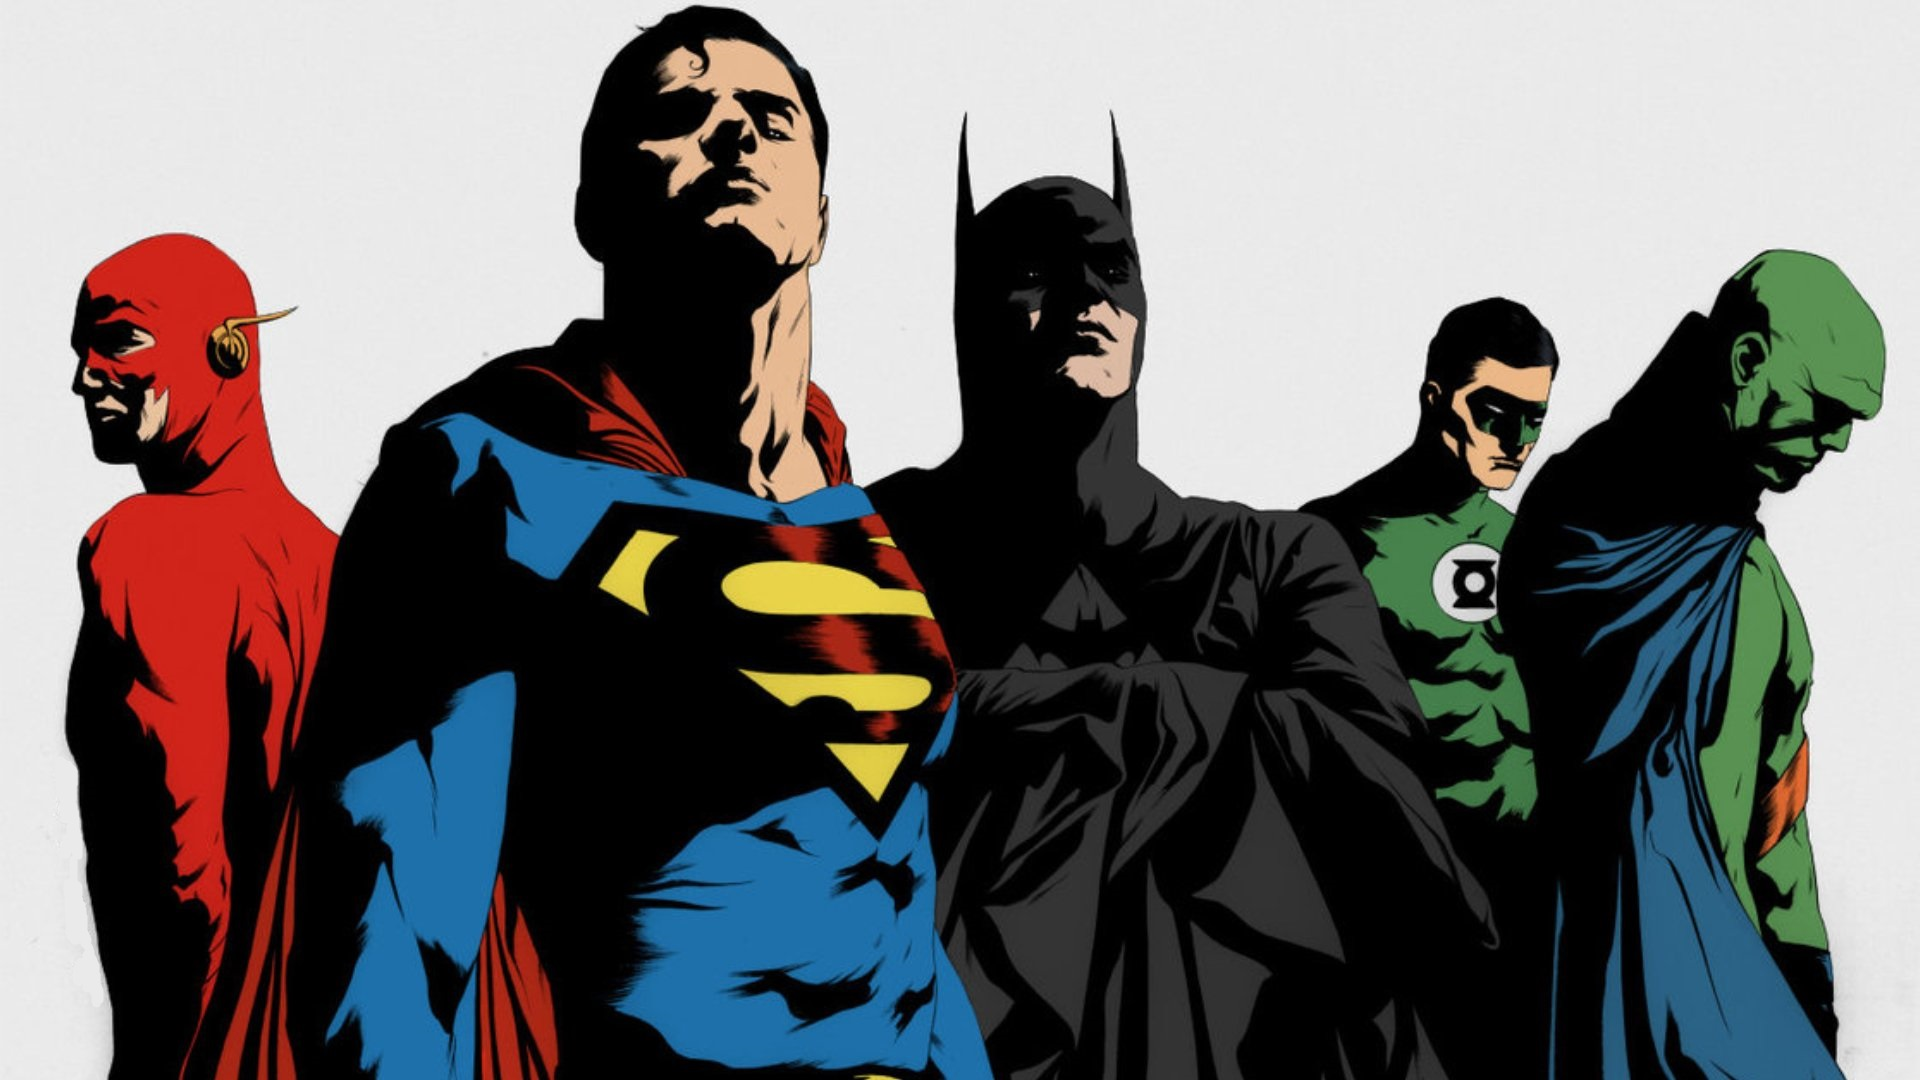 Hd wallpaper justice league - 91 Justice League Of America Hd Wallpapers Backgrounds Wallpaper Abyss Page 3